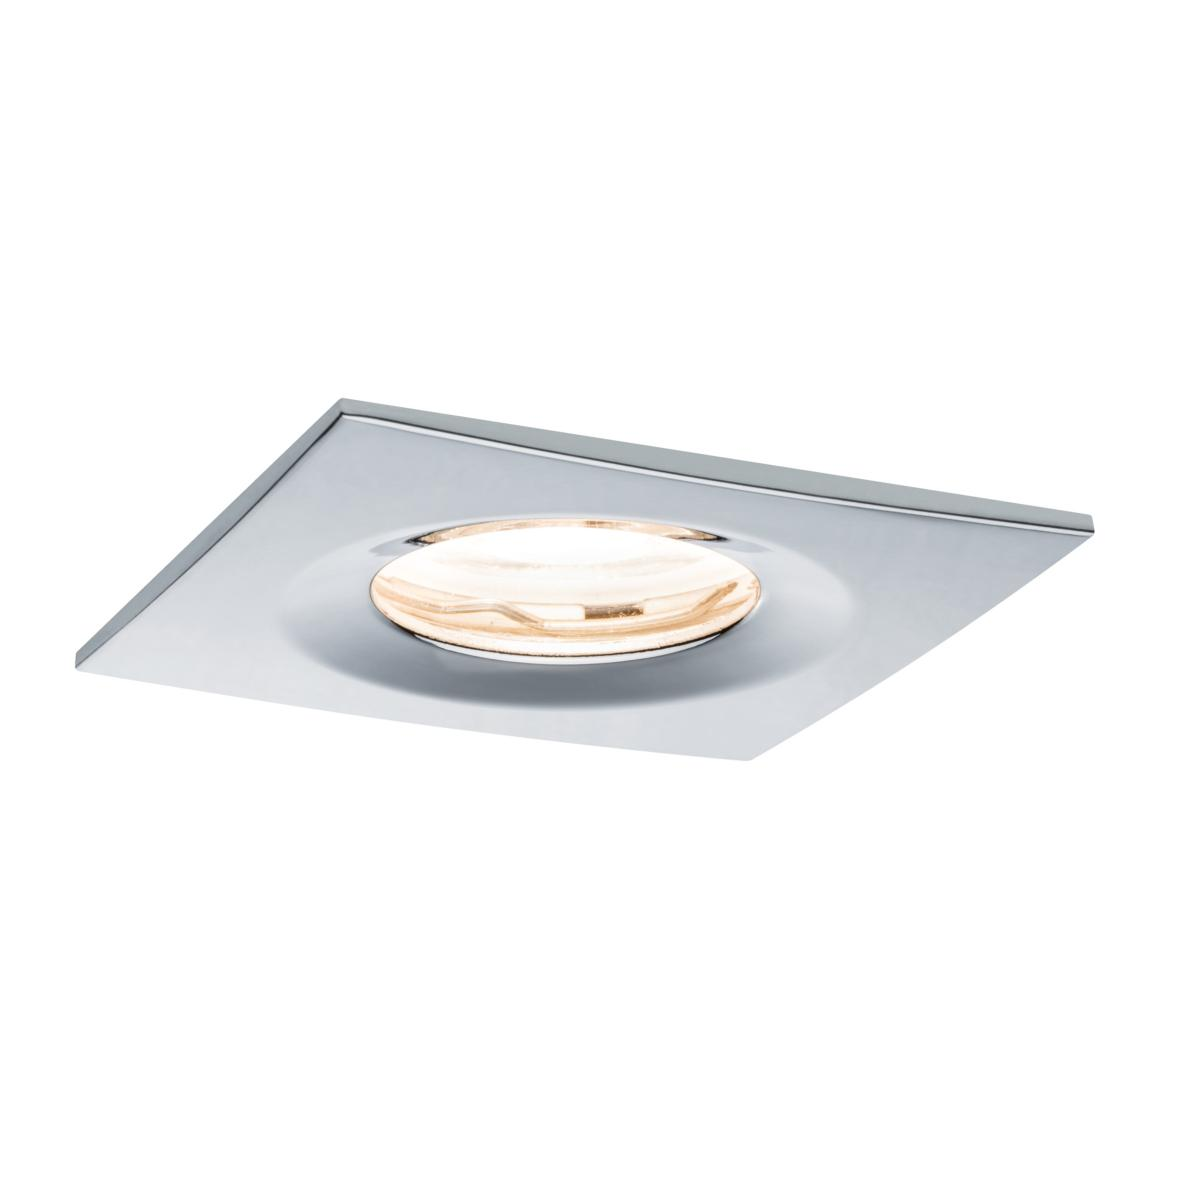 Spot Encastrable Meuble Salle De Bain Spot Led Ip65 Encastrable Dimmable Chromé Carré 7w 230v Paulmann 93630